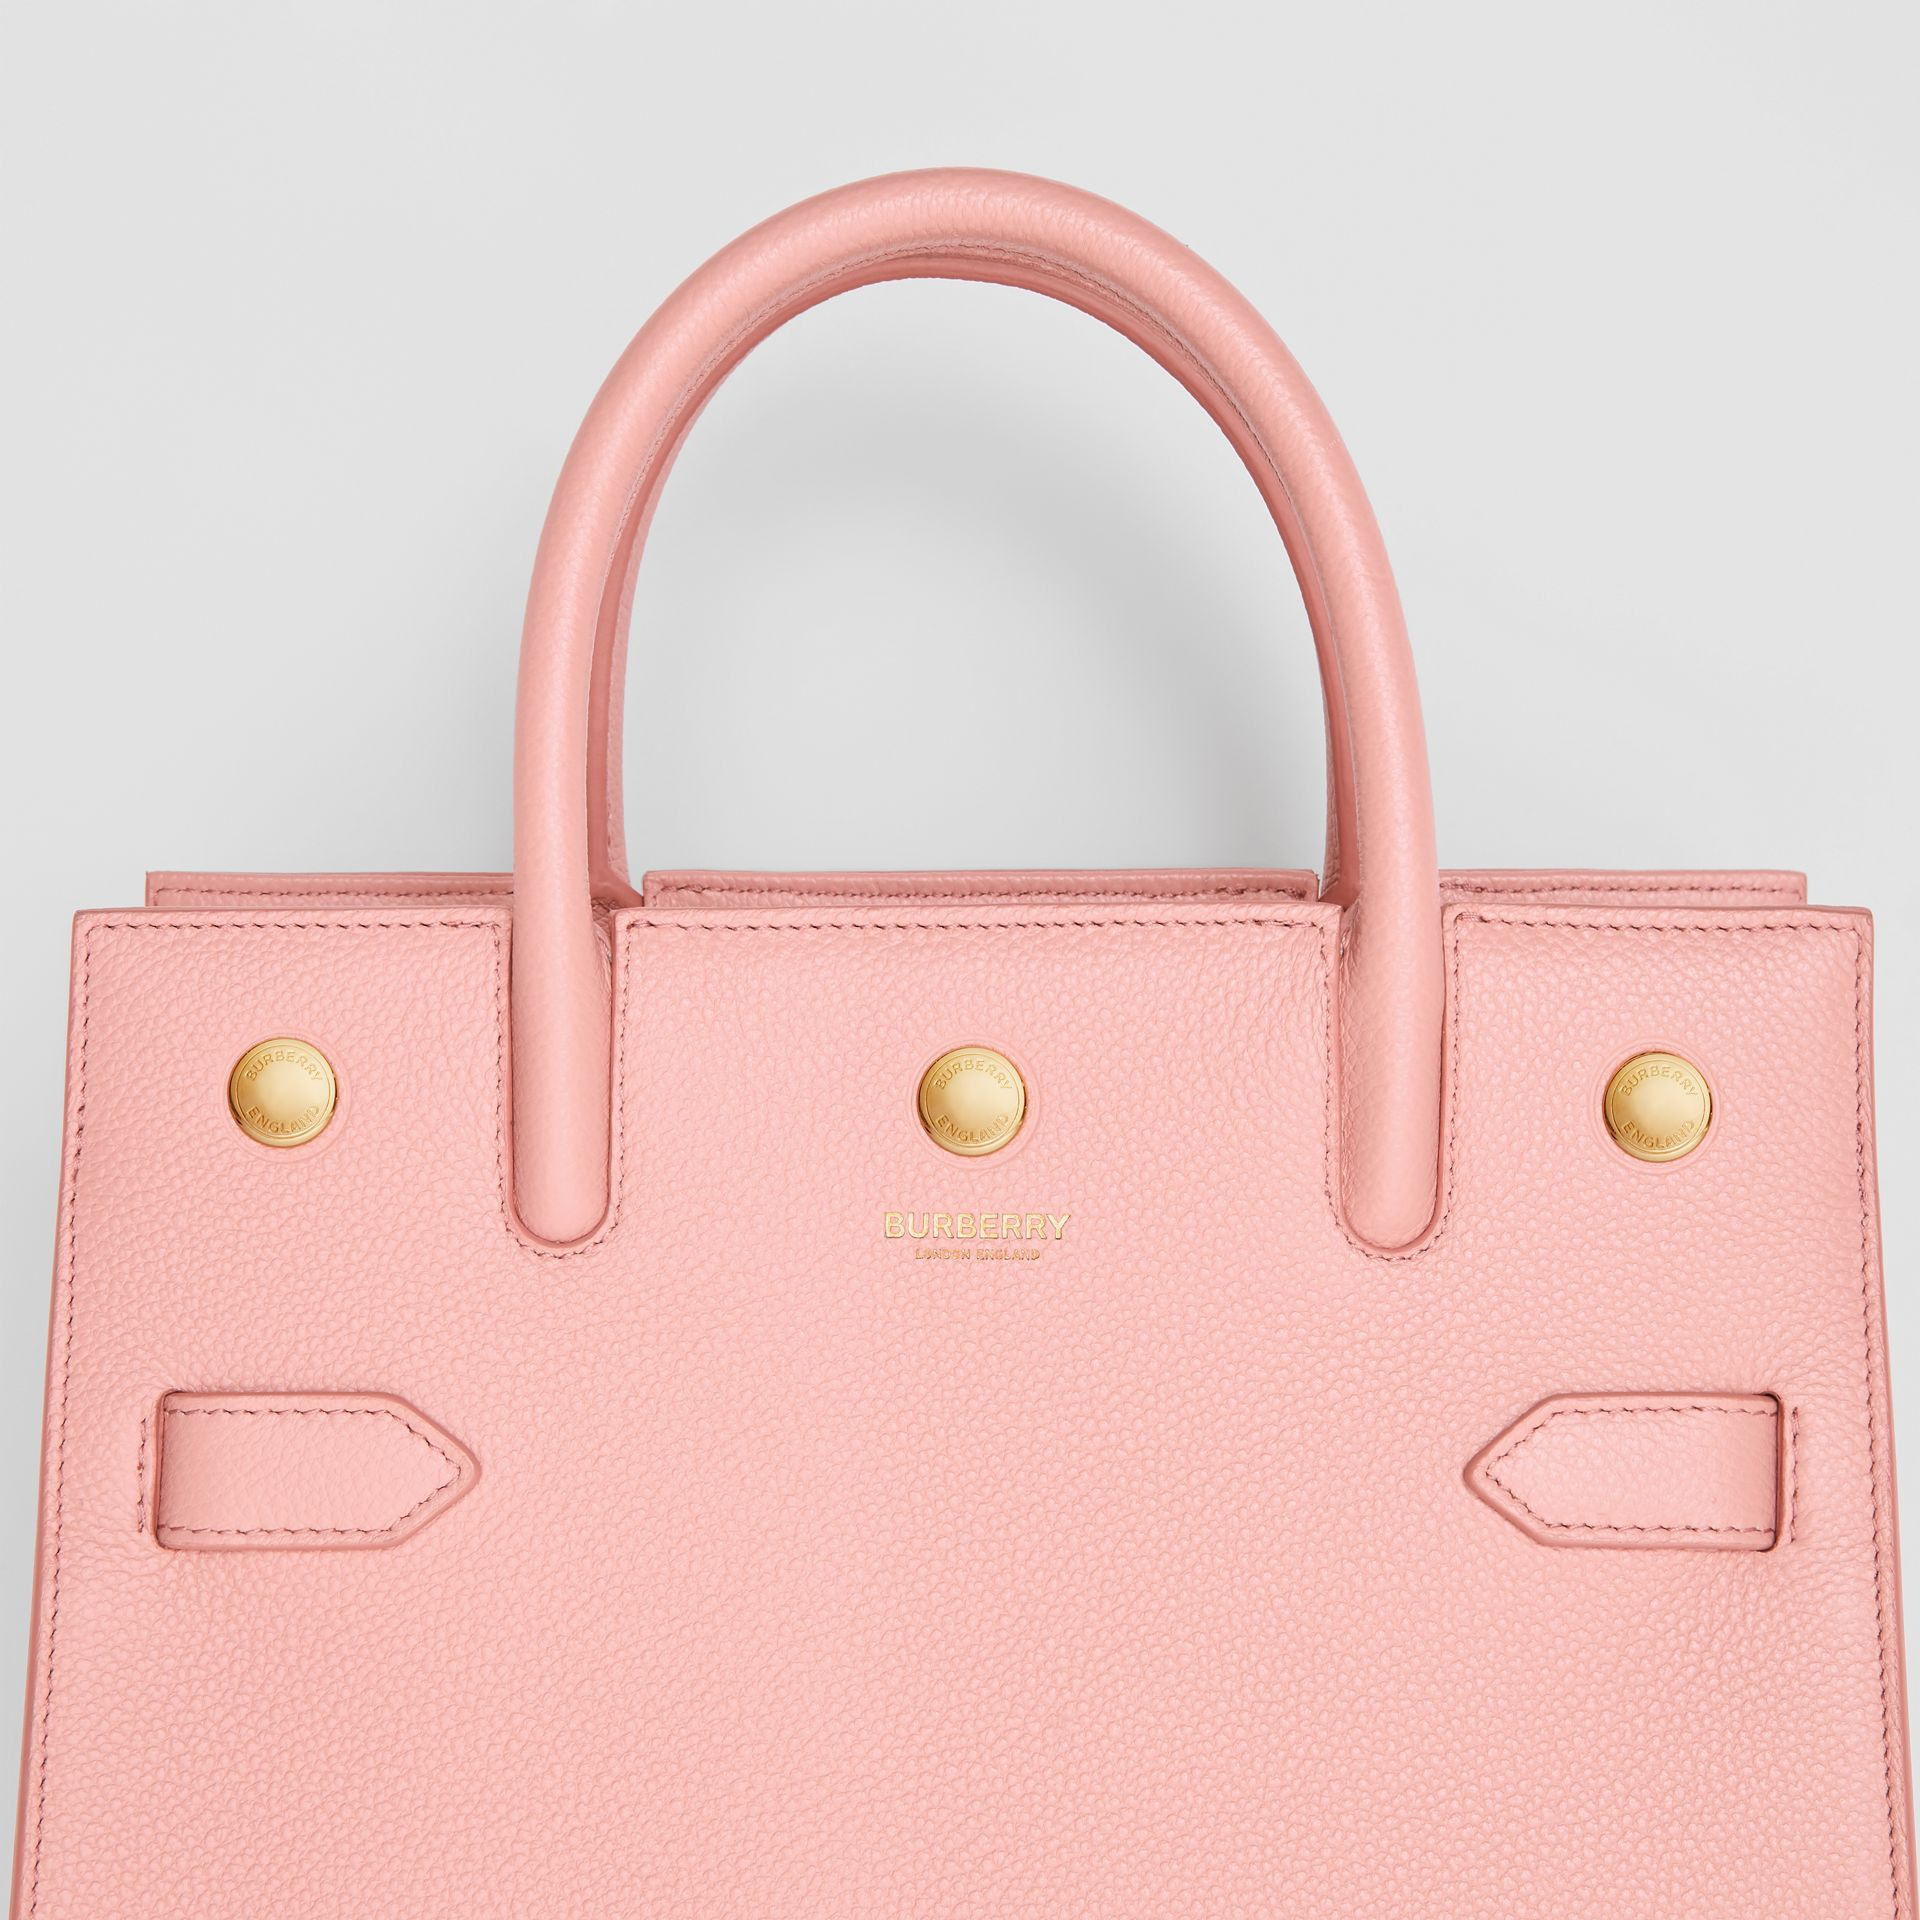 Mini Leather Two-handle Title Bag in Blush Pink - Women | Burberry United Kingdom - gallery image 1